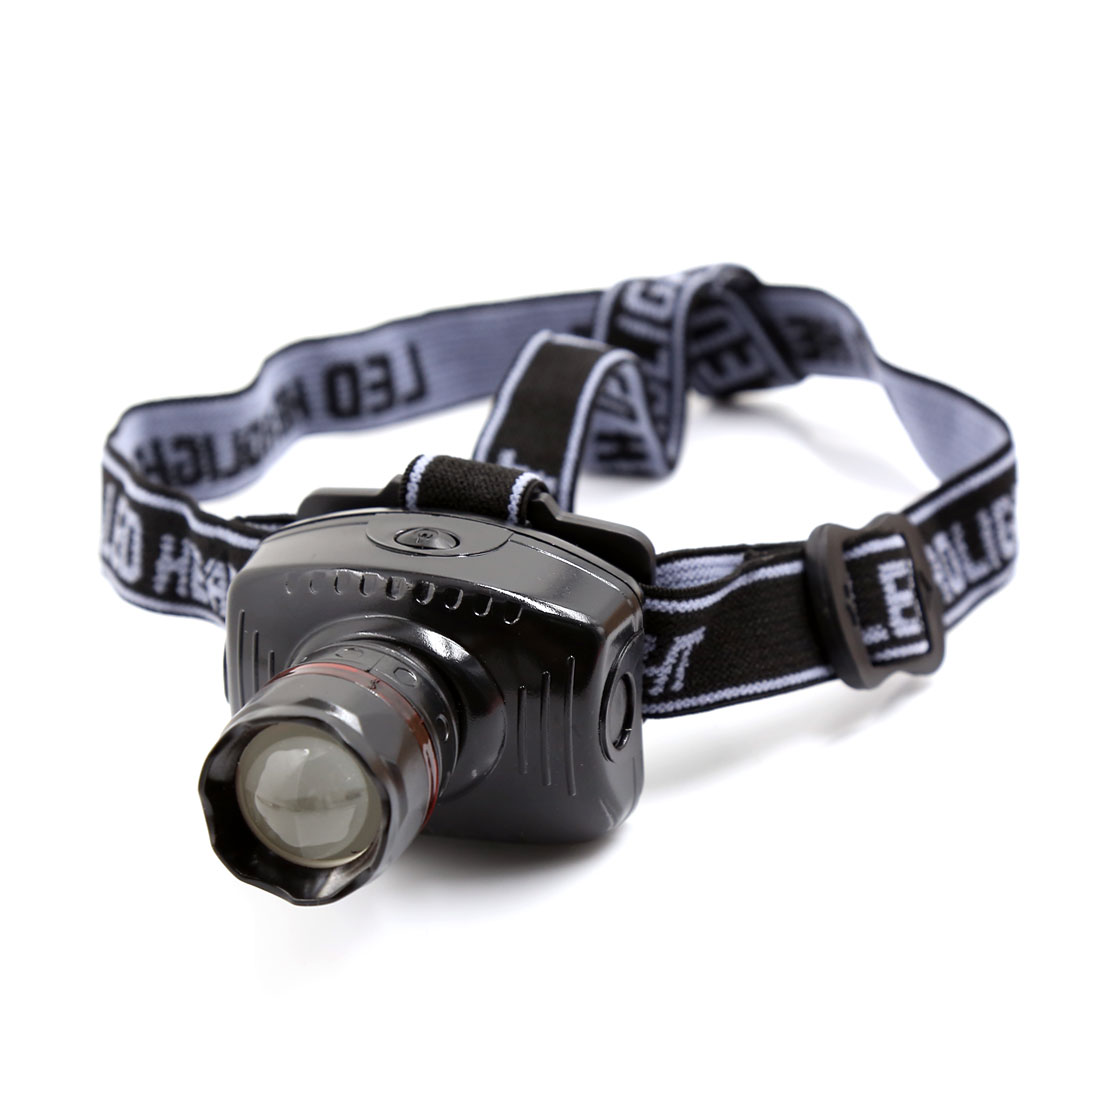 Unique Bargains Outdoor Camping Hiking Elastic Headstrap White LED Zoomable Headlight Headlamp